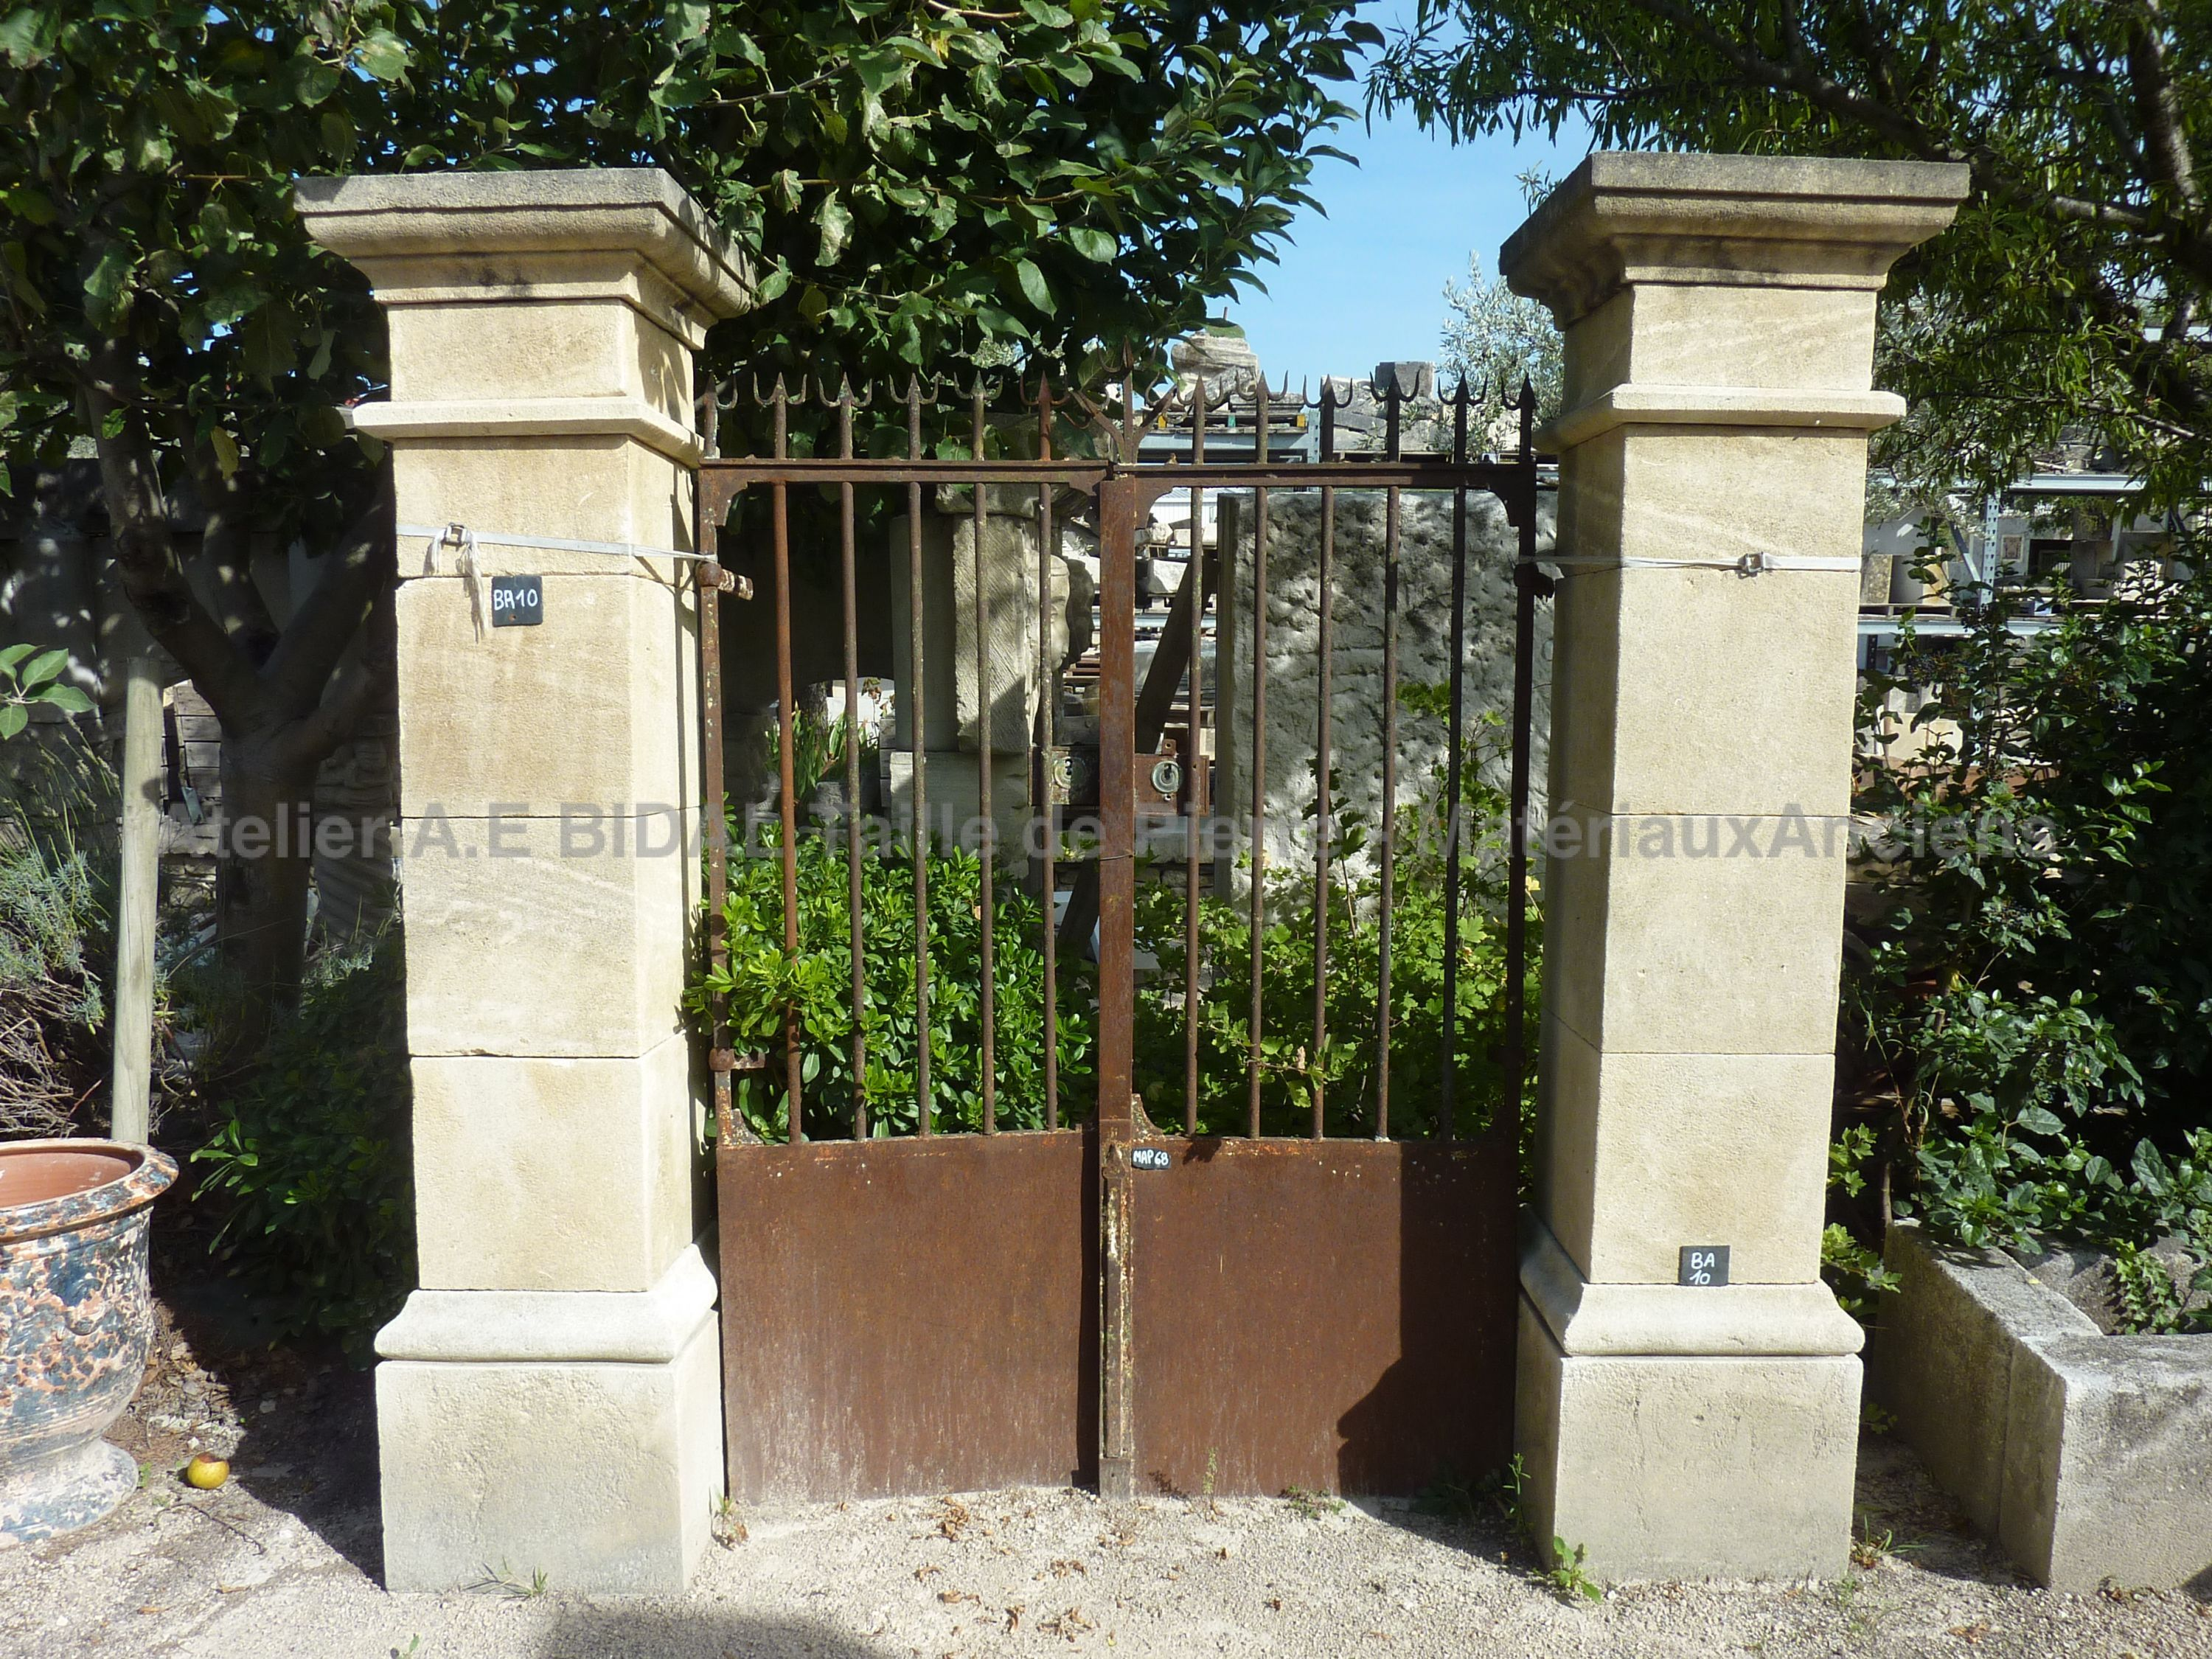 BA10 - Square pillars for portal carved in natural stone and aged by time